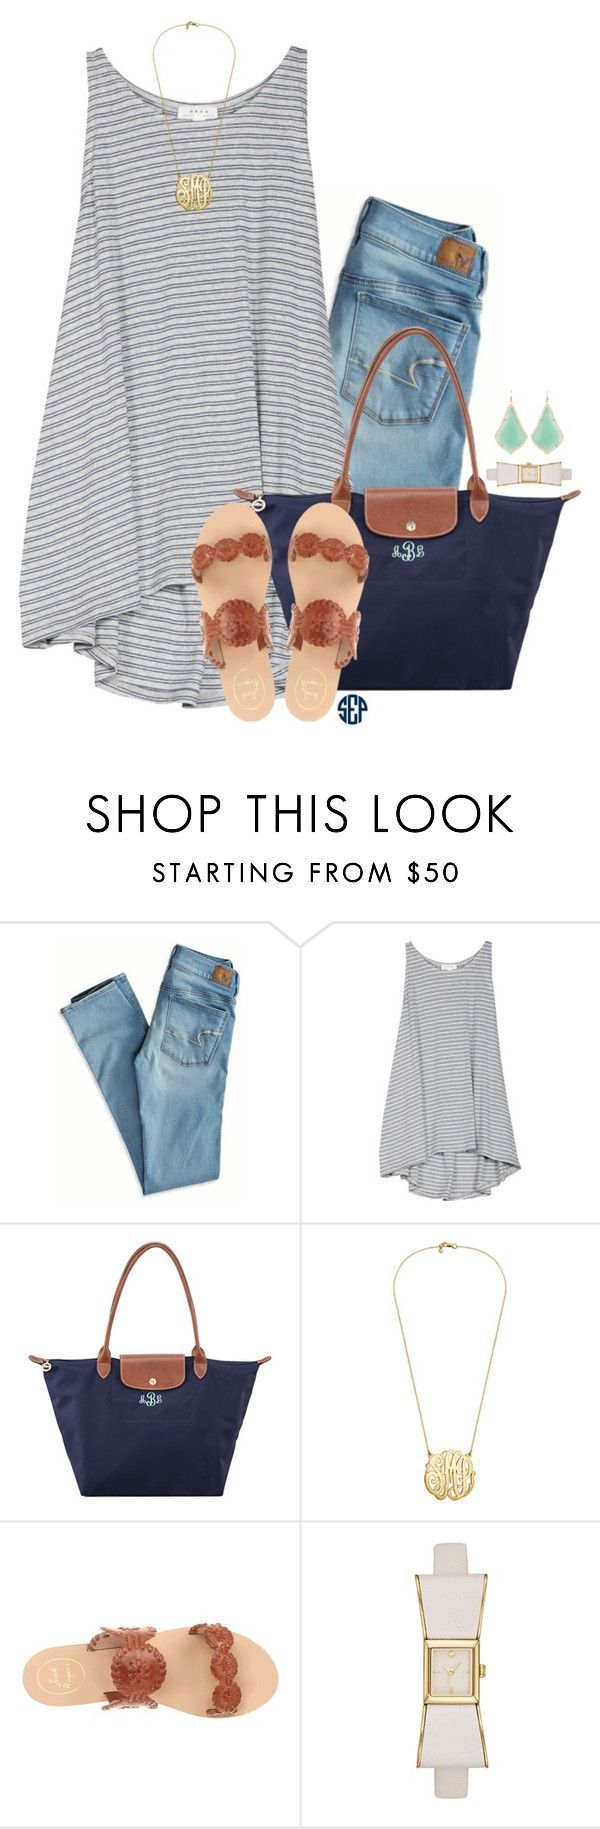 """""""Read the description it is my contest!!!"""" by thedancersophie ❤ liked on Polyvore featuring American Eagle Outfitters, Soft Joie, Longchamp, Jack Rogers, Kate Spade, Kendra Scott and sophiesislandvacation"""